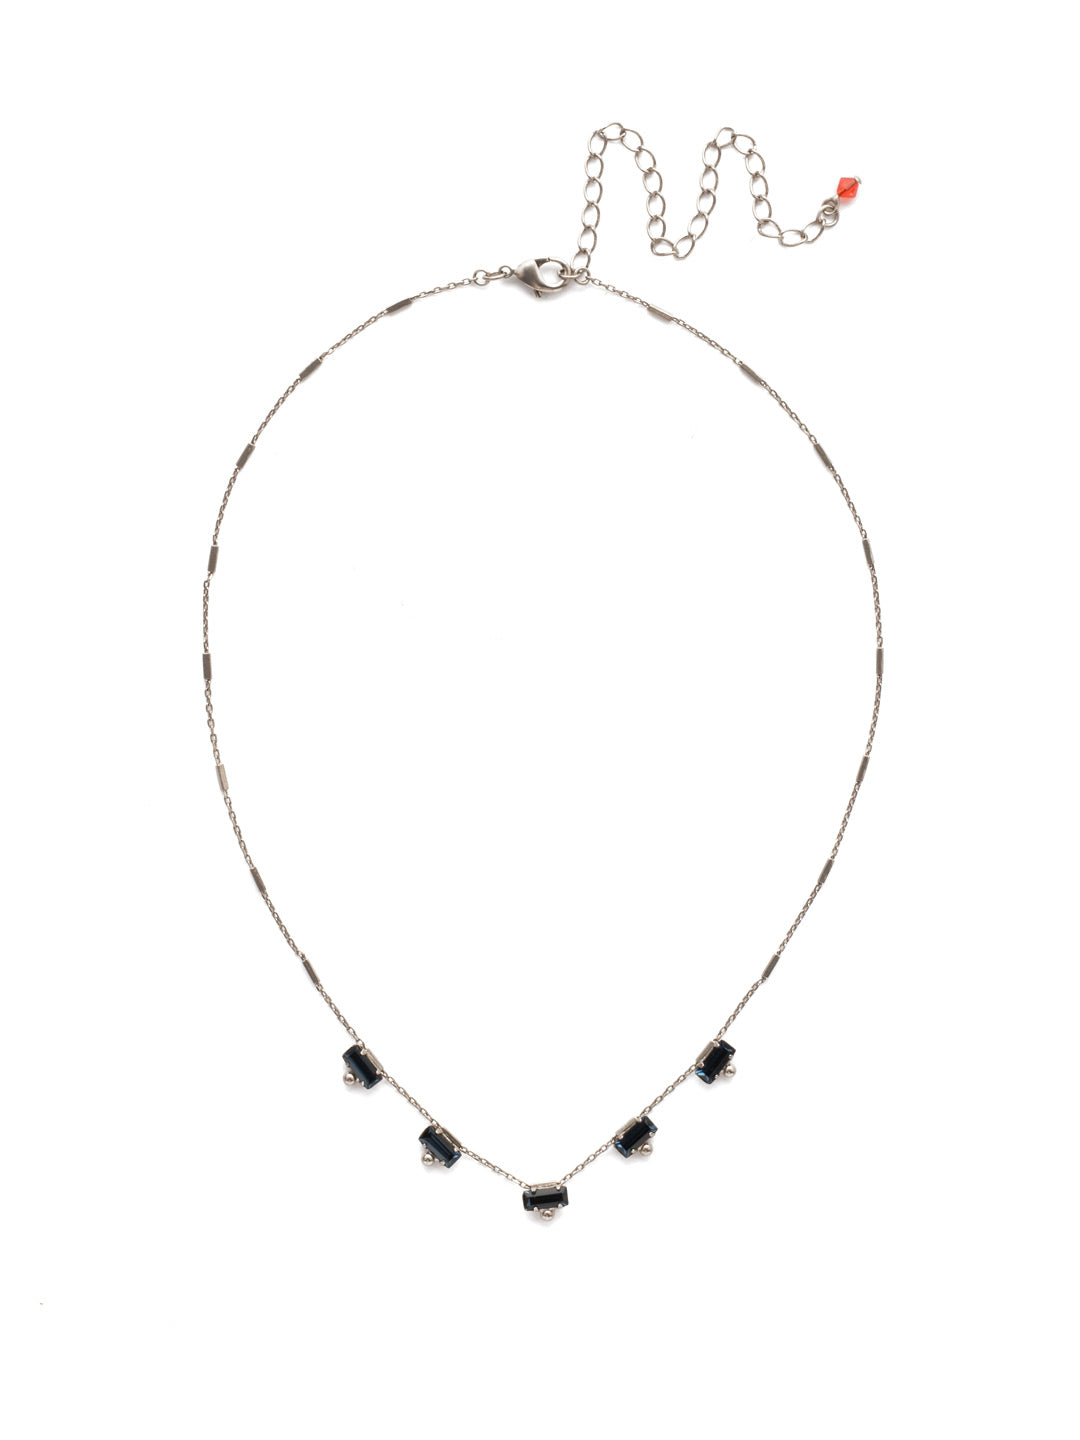 Shine and Dash Tennis Necklace - NDM17ASBTB